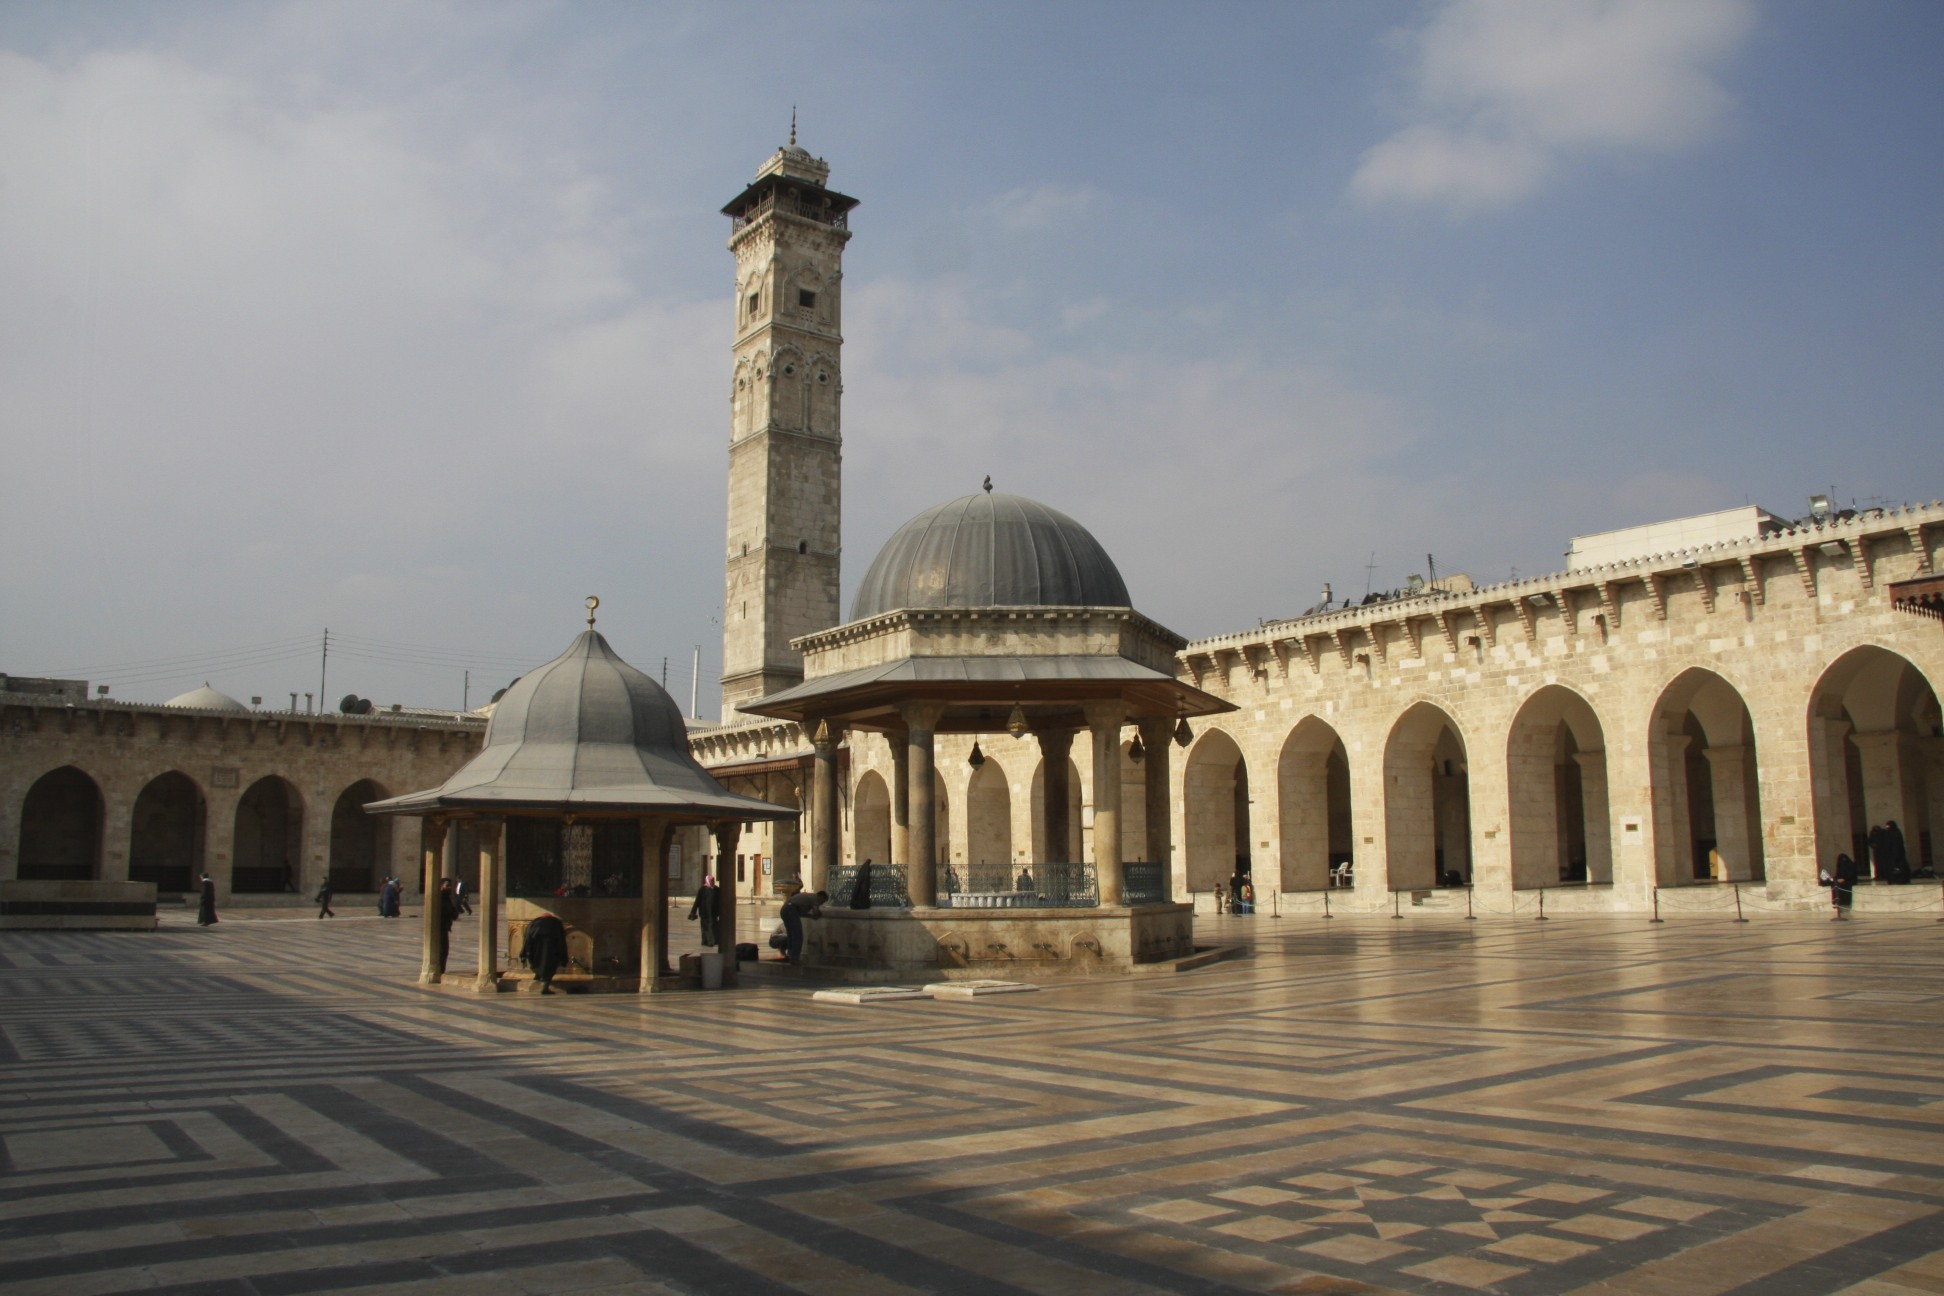 The Great Mosque of Aleppo built in the year 717.  The minaret was built in the year 1090.  It was destroyed recently.